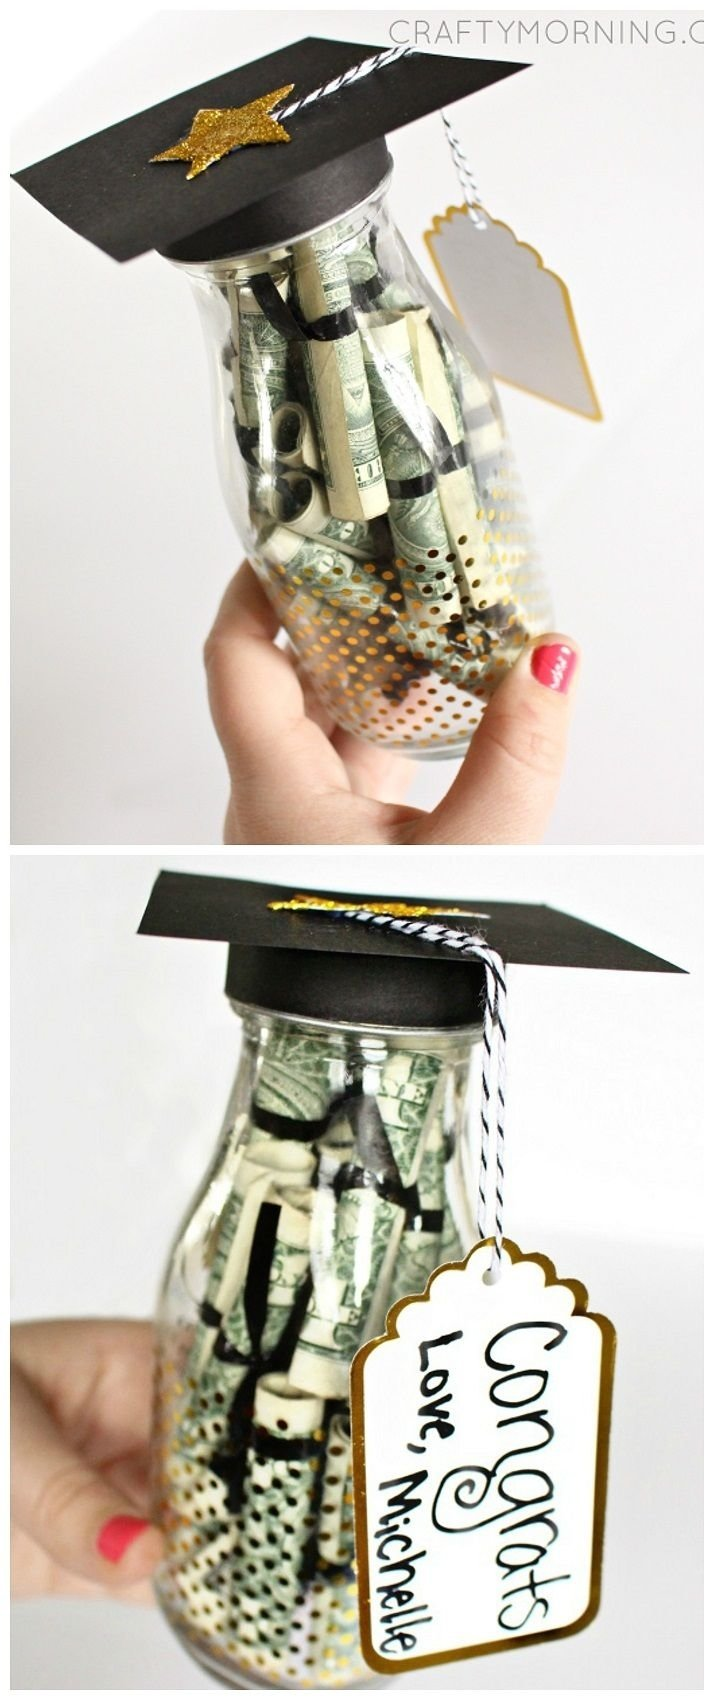 10 Most Popular High School Graduation Gift Ideas For Son 157 best graduation gift ideas images on pinterest graduation 6 2021